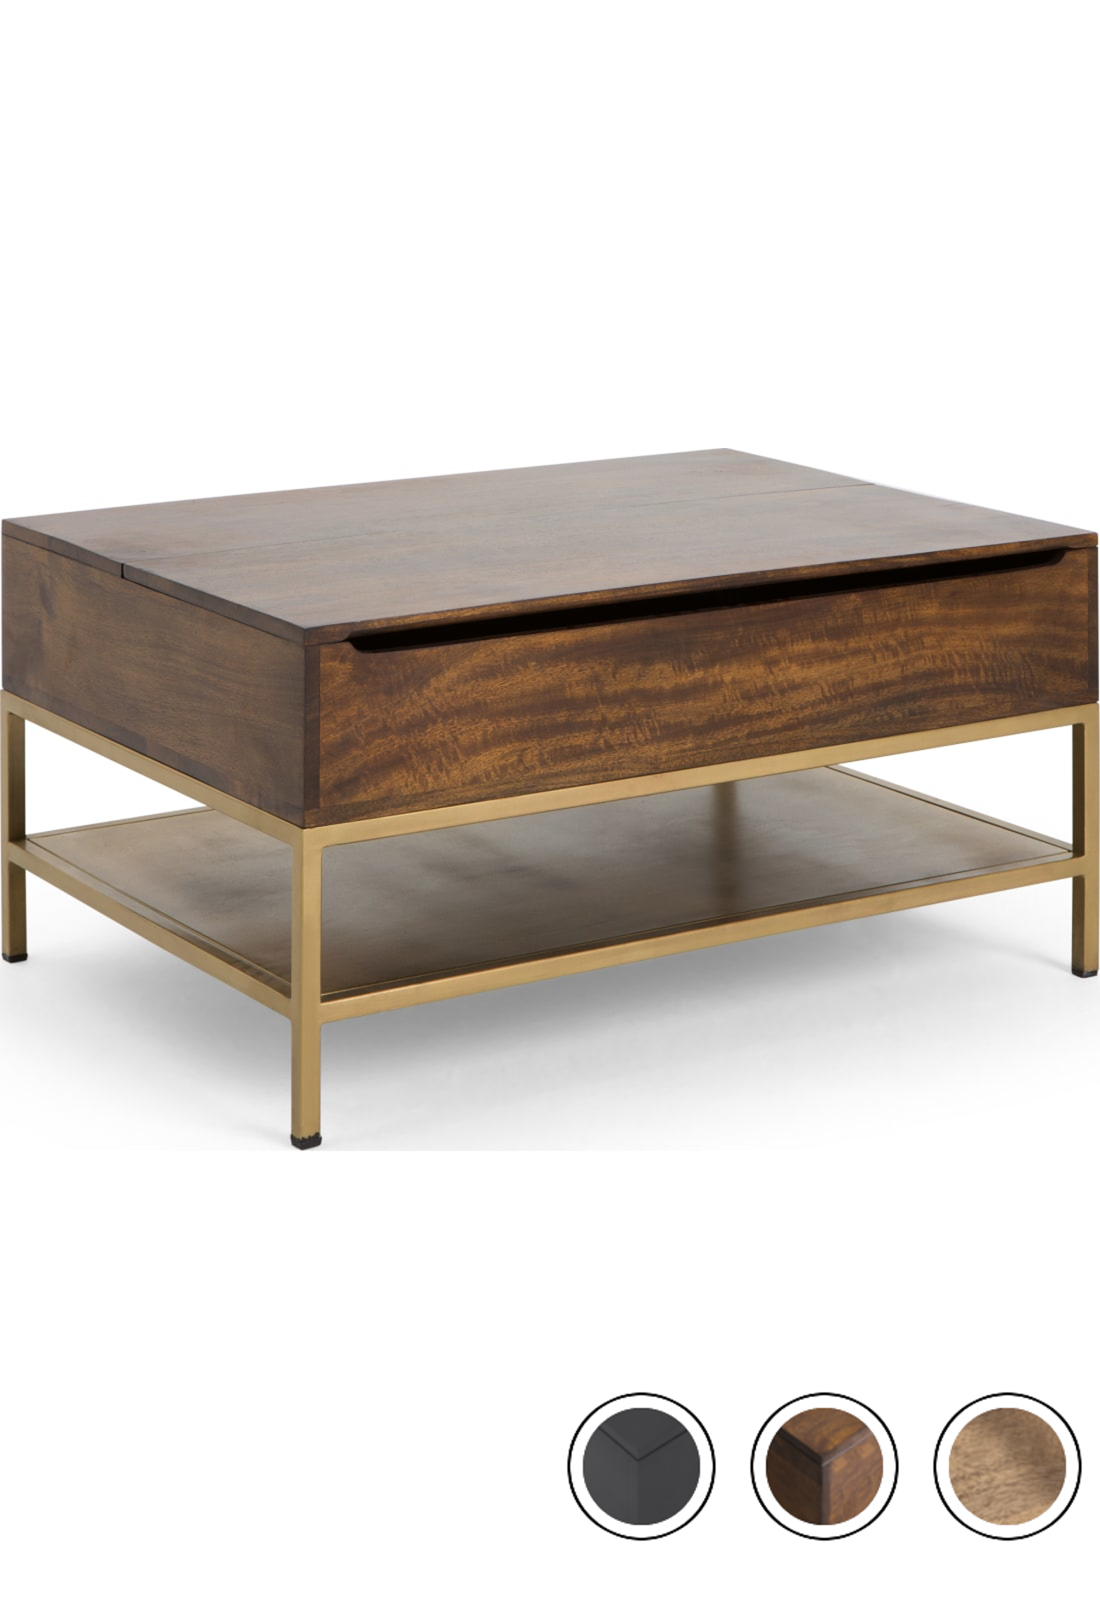 Made Lift Top Coffee Table With Storage Mango Wood Brass Lomond Coffee Tables Collection From Made Com Coffee Table Lift Top Coffee Table Coffee Table Wood [ 1600 x 1100 Pixel ]